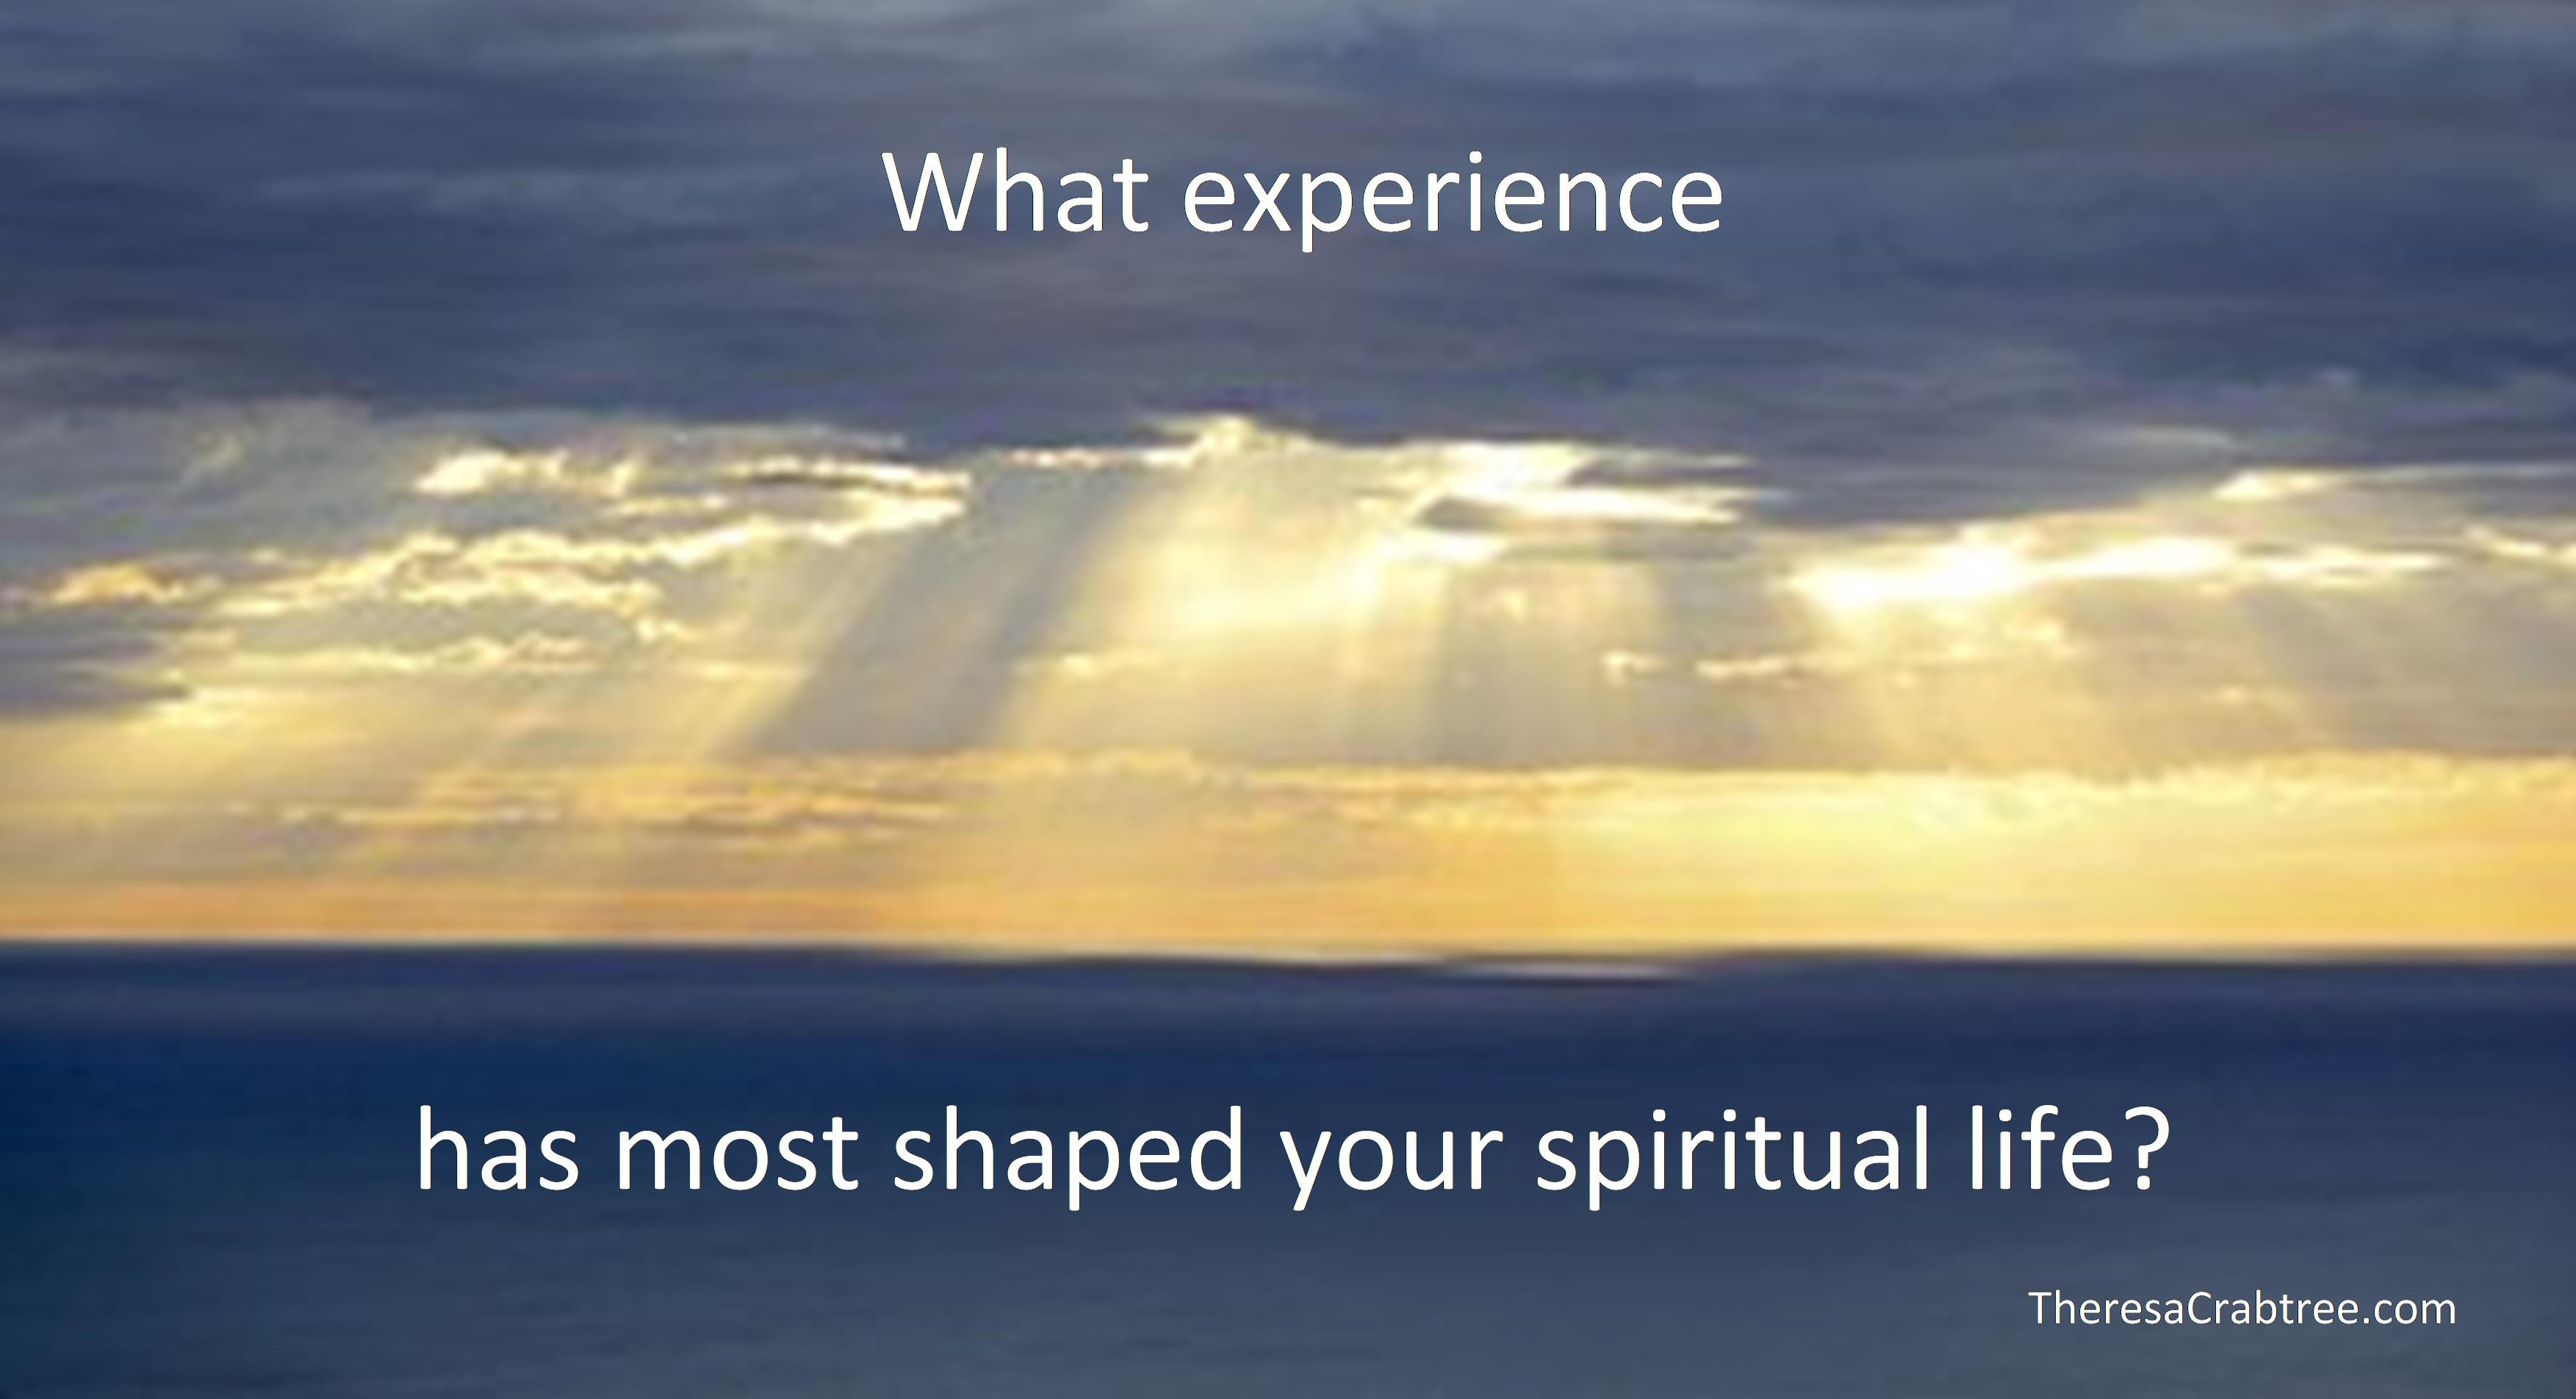 What experience has most shaped your life?